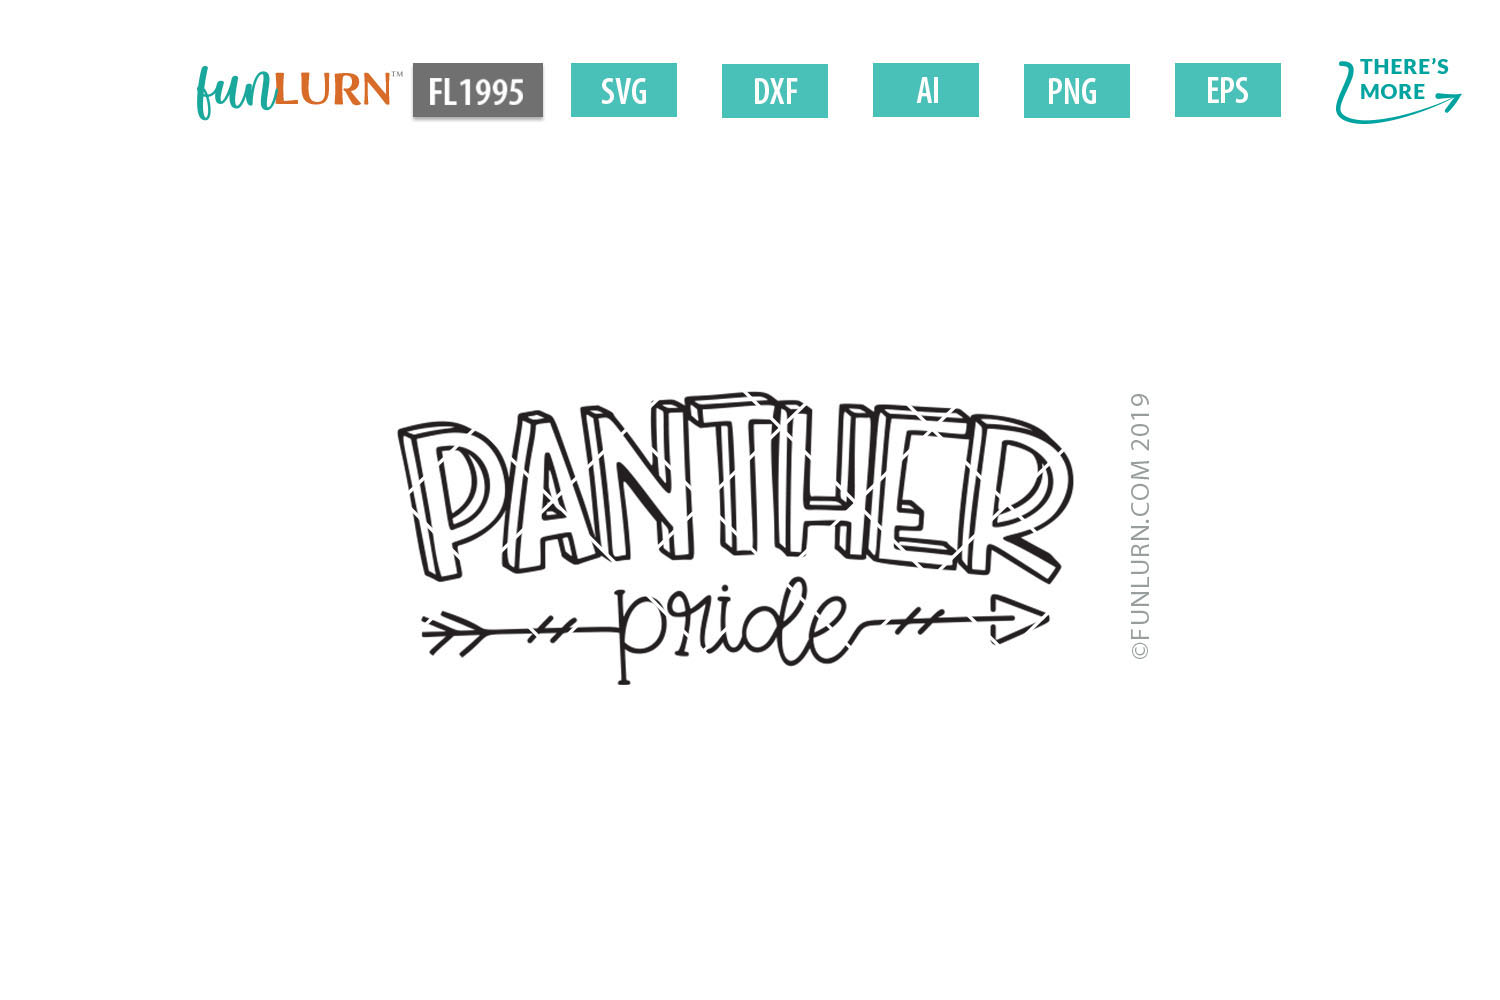 Panther Pride Team SVG Cut File example image 2